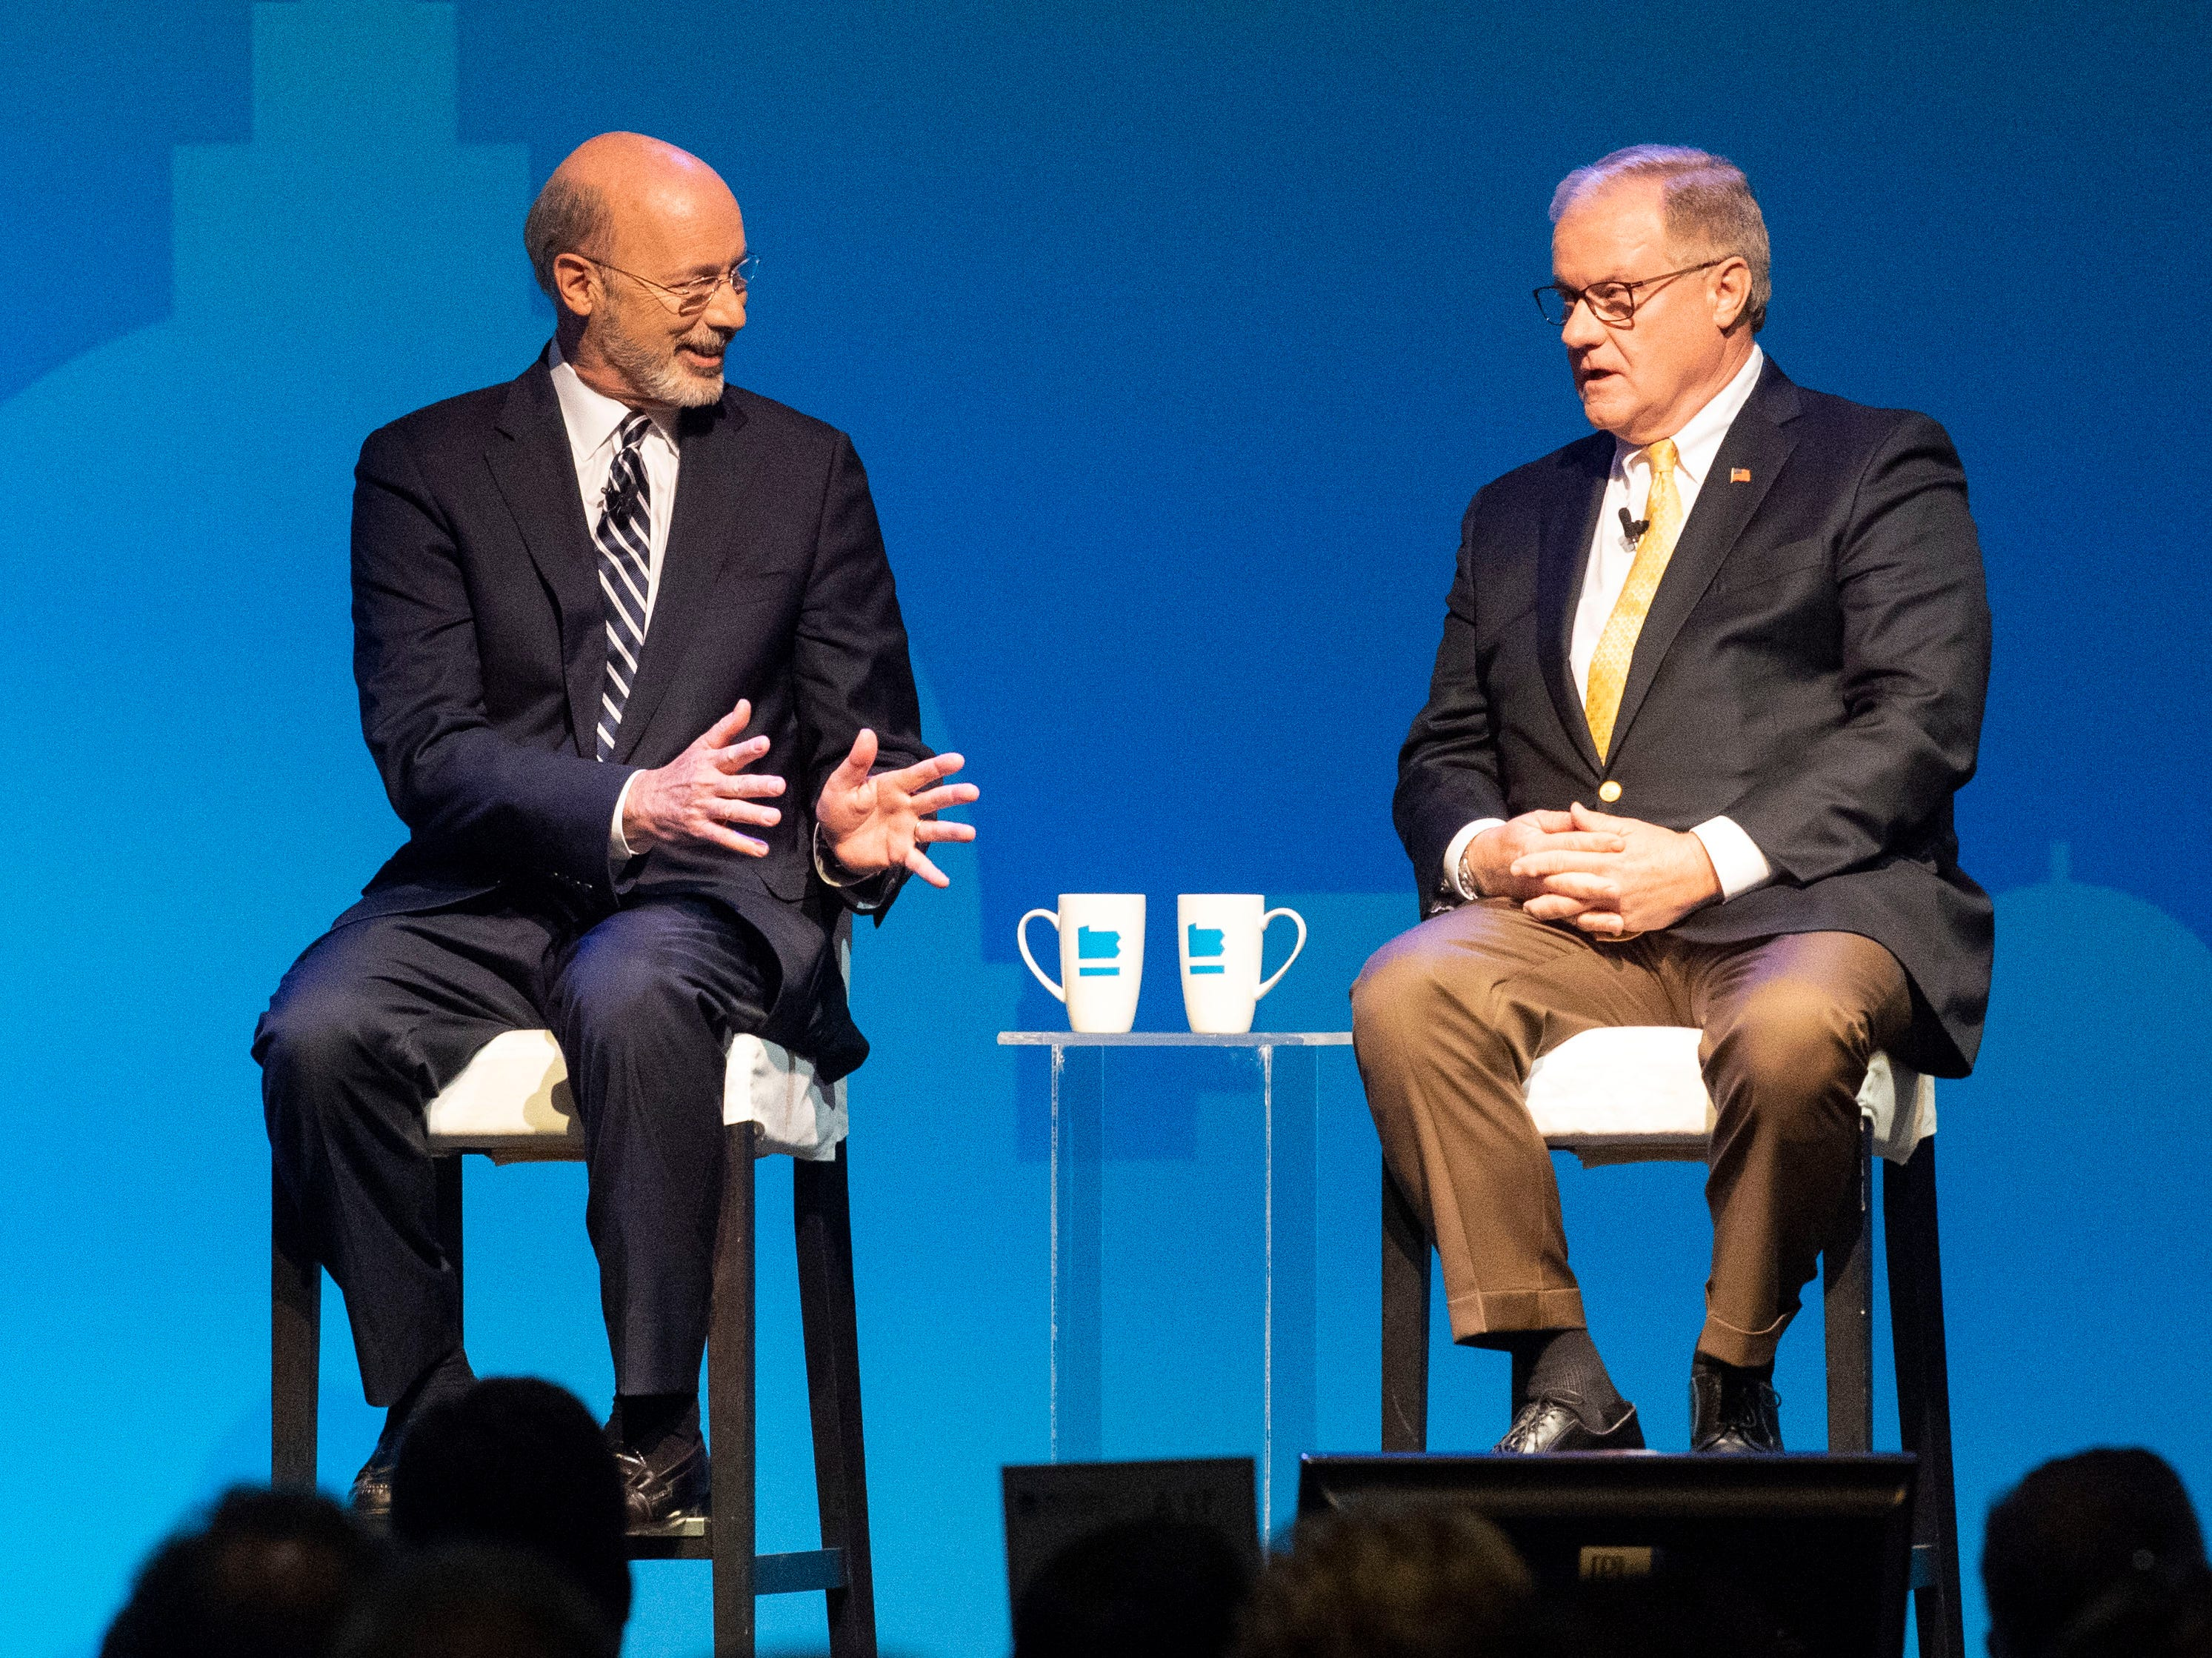 Democratic Gov. Tom Wolf, left, speaks with challenger and former state Sen. Scott Wagner, both of York County, during the gubernatorial debate at Hershey Lodge on Monday, Oct. 1, 2018.